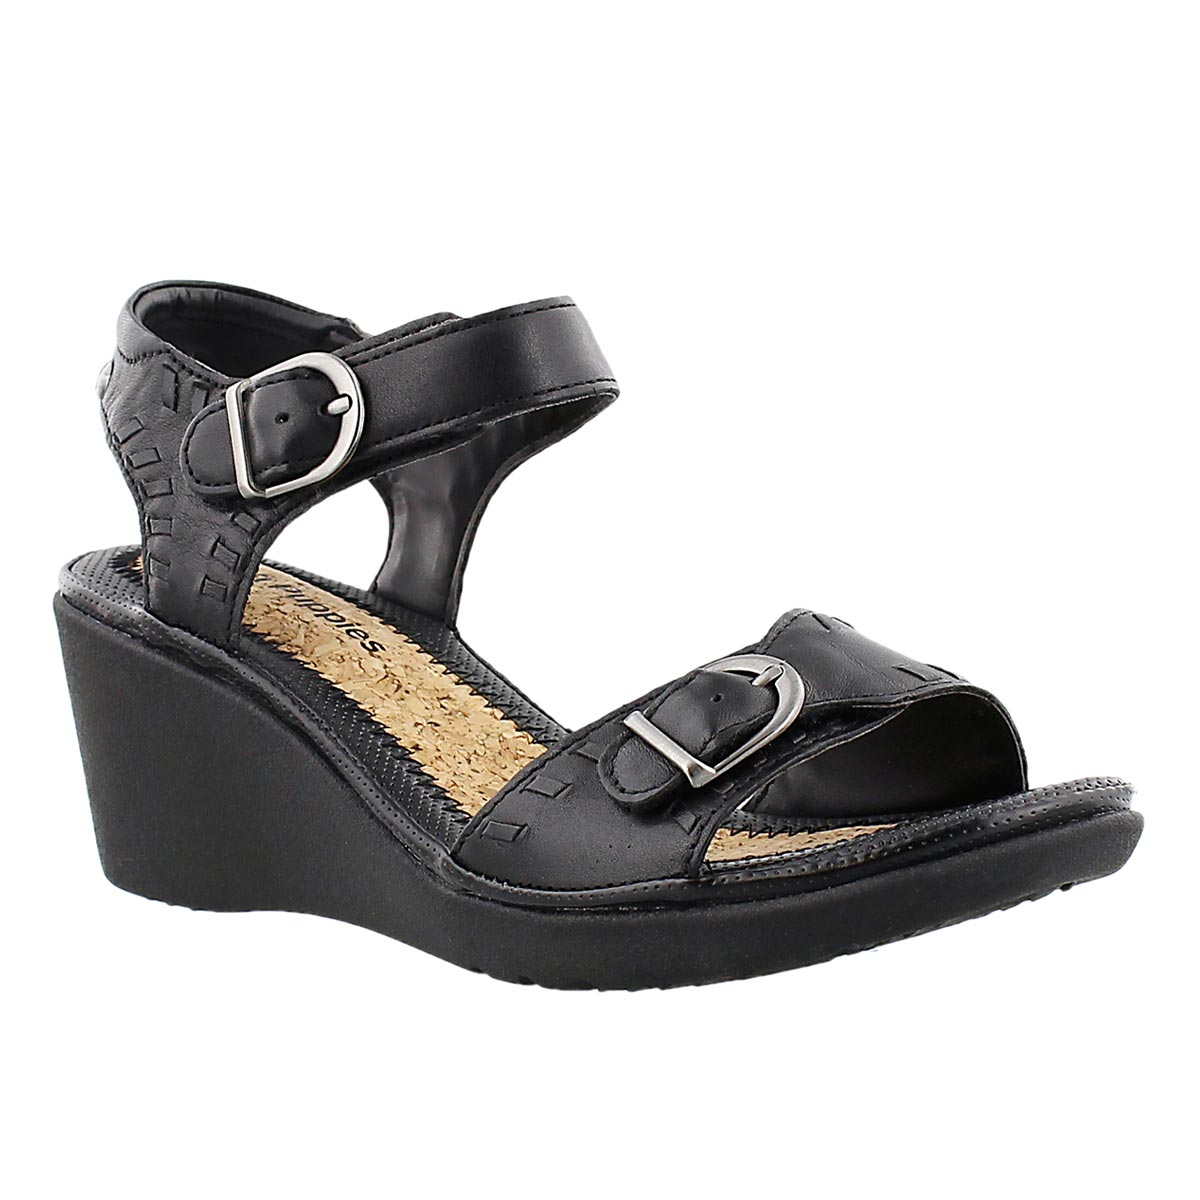 Lds Noelle Russo black wedge sandal